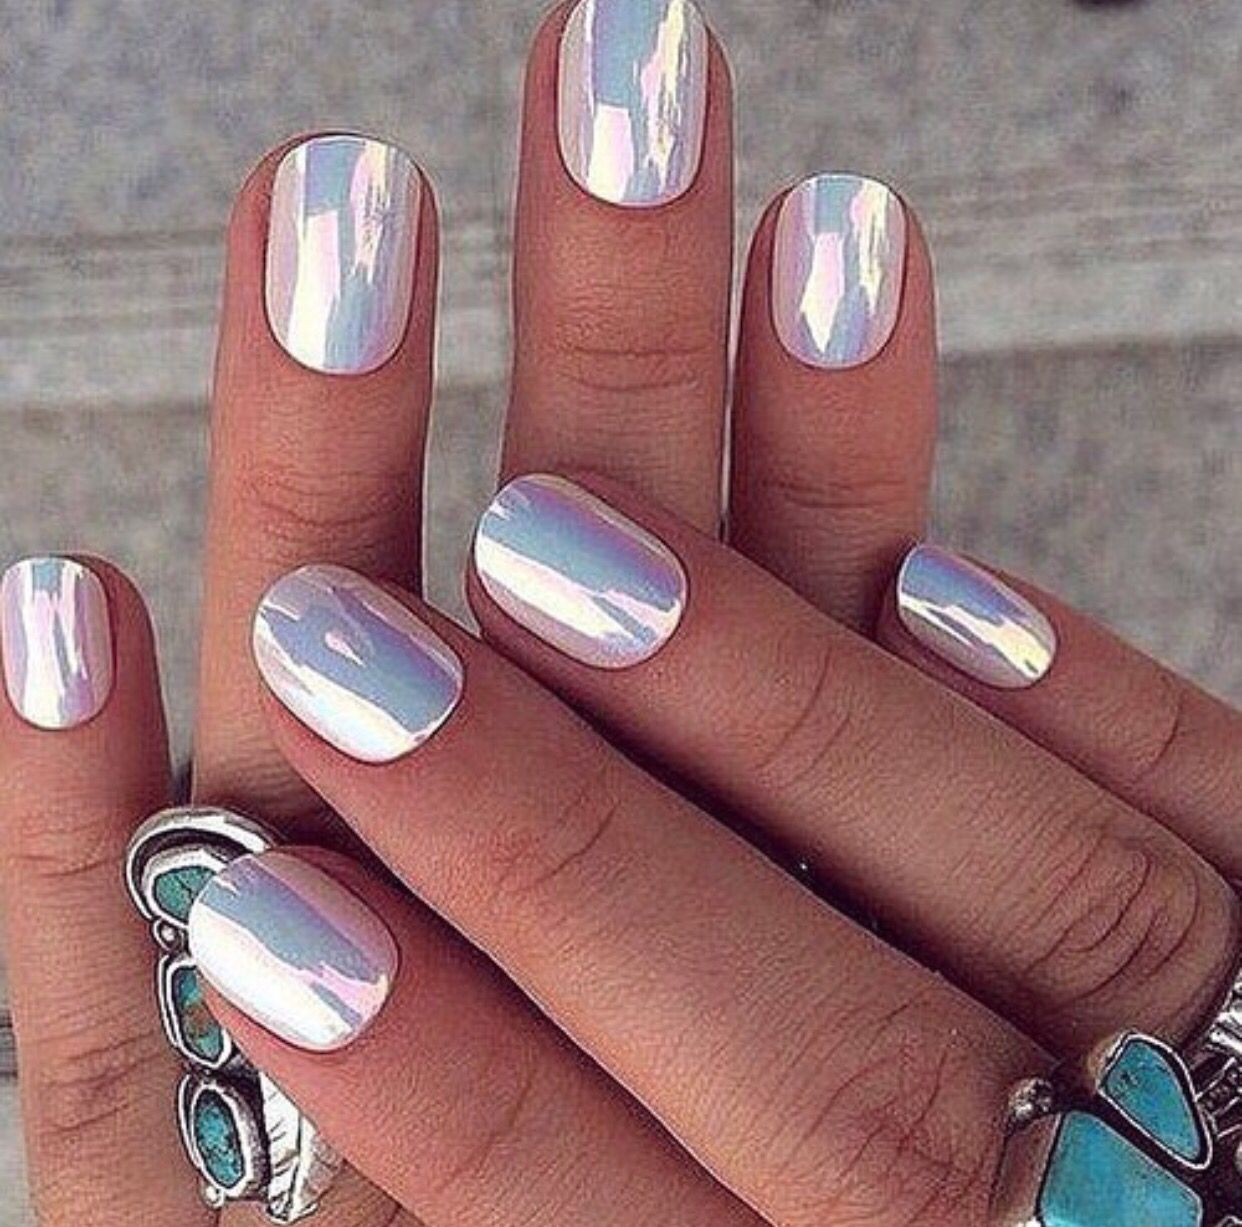 Opaque Metallic nails, Chrome nails designs, Holographic